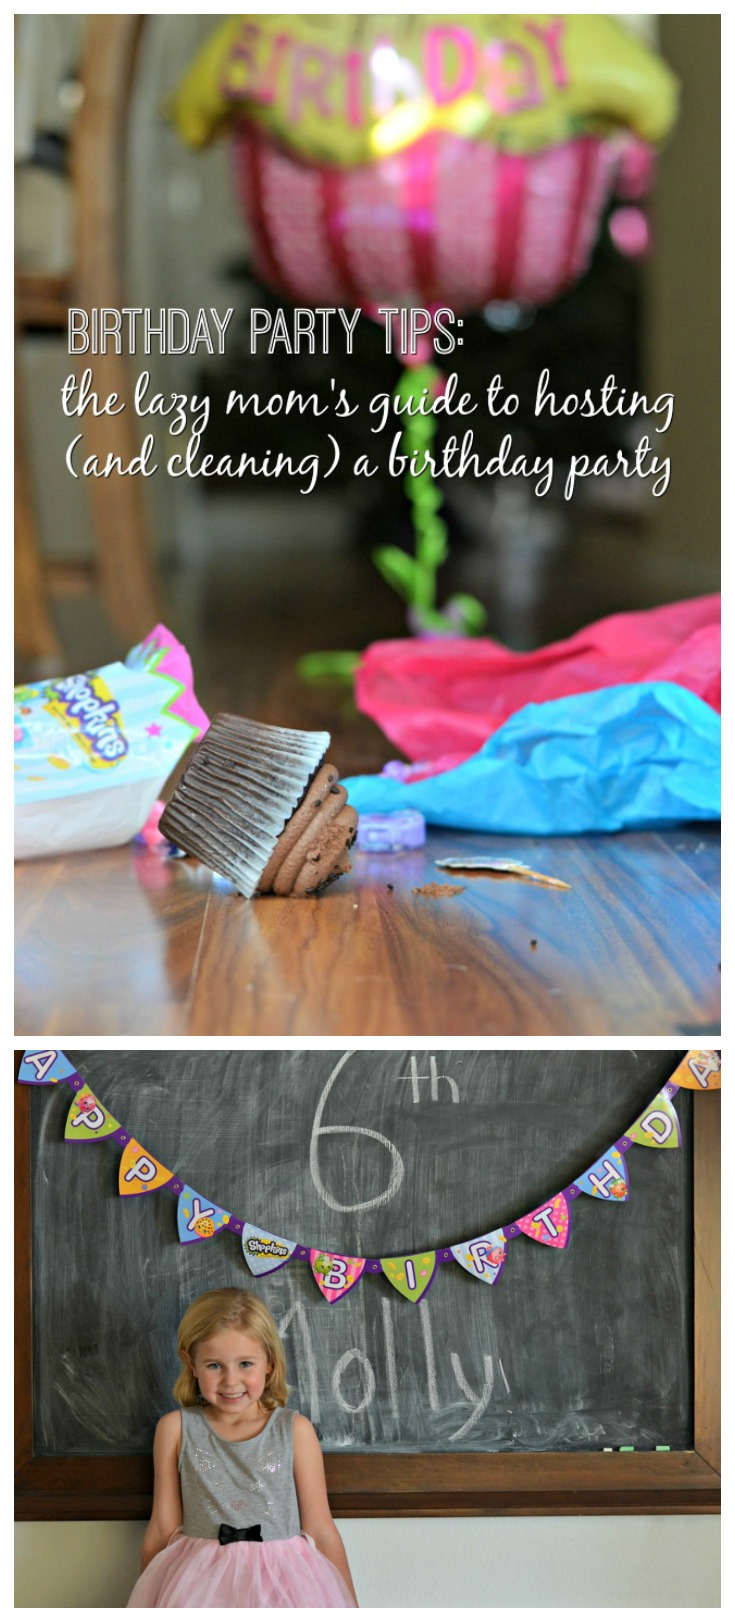 birthday-party-tips-the-lazy-moms-gude-to-hosting-a-party